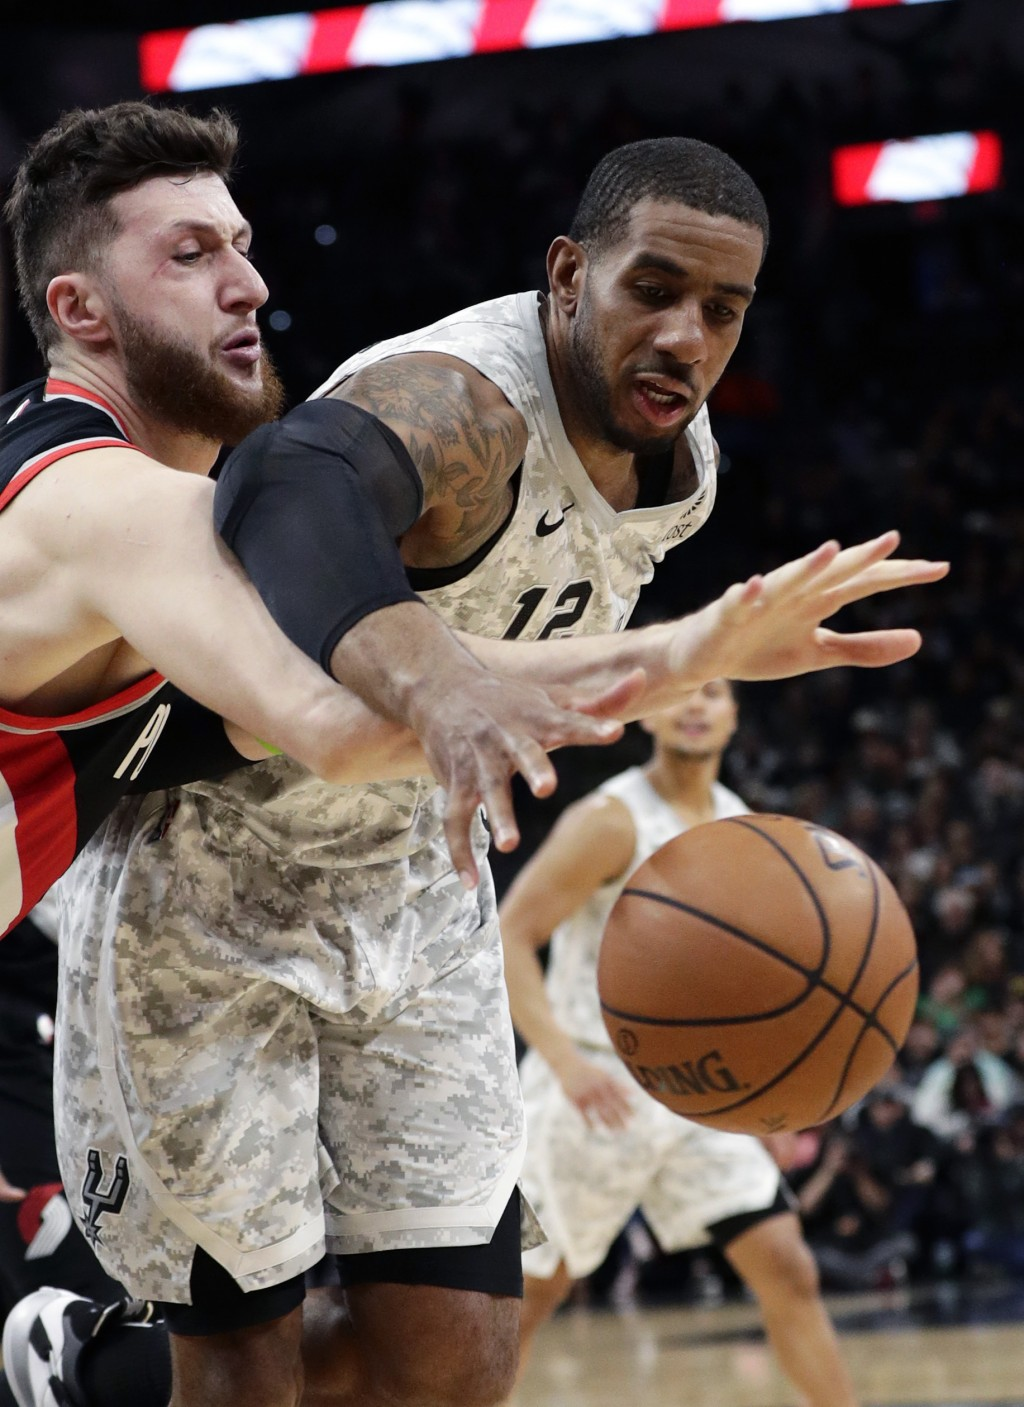 San Antonio Spurs center LaMarcus Aldridge (12) loses control of the ball as Portland Trail Blazers center Jusuf Nurkic, left, reaches in during the f